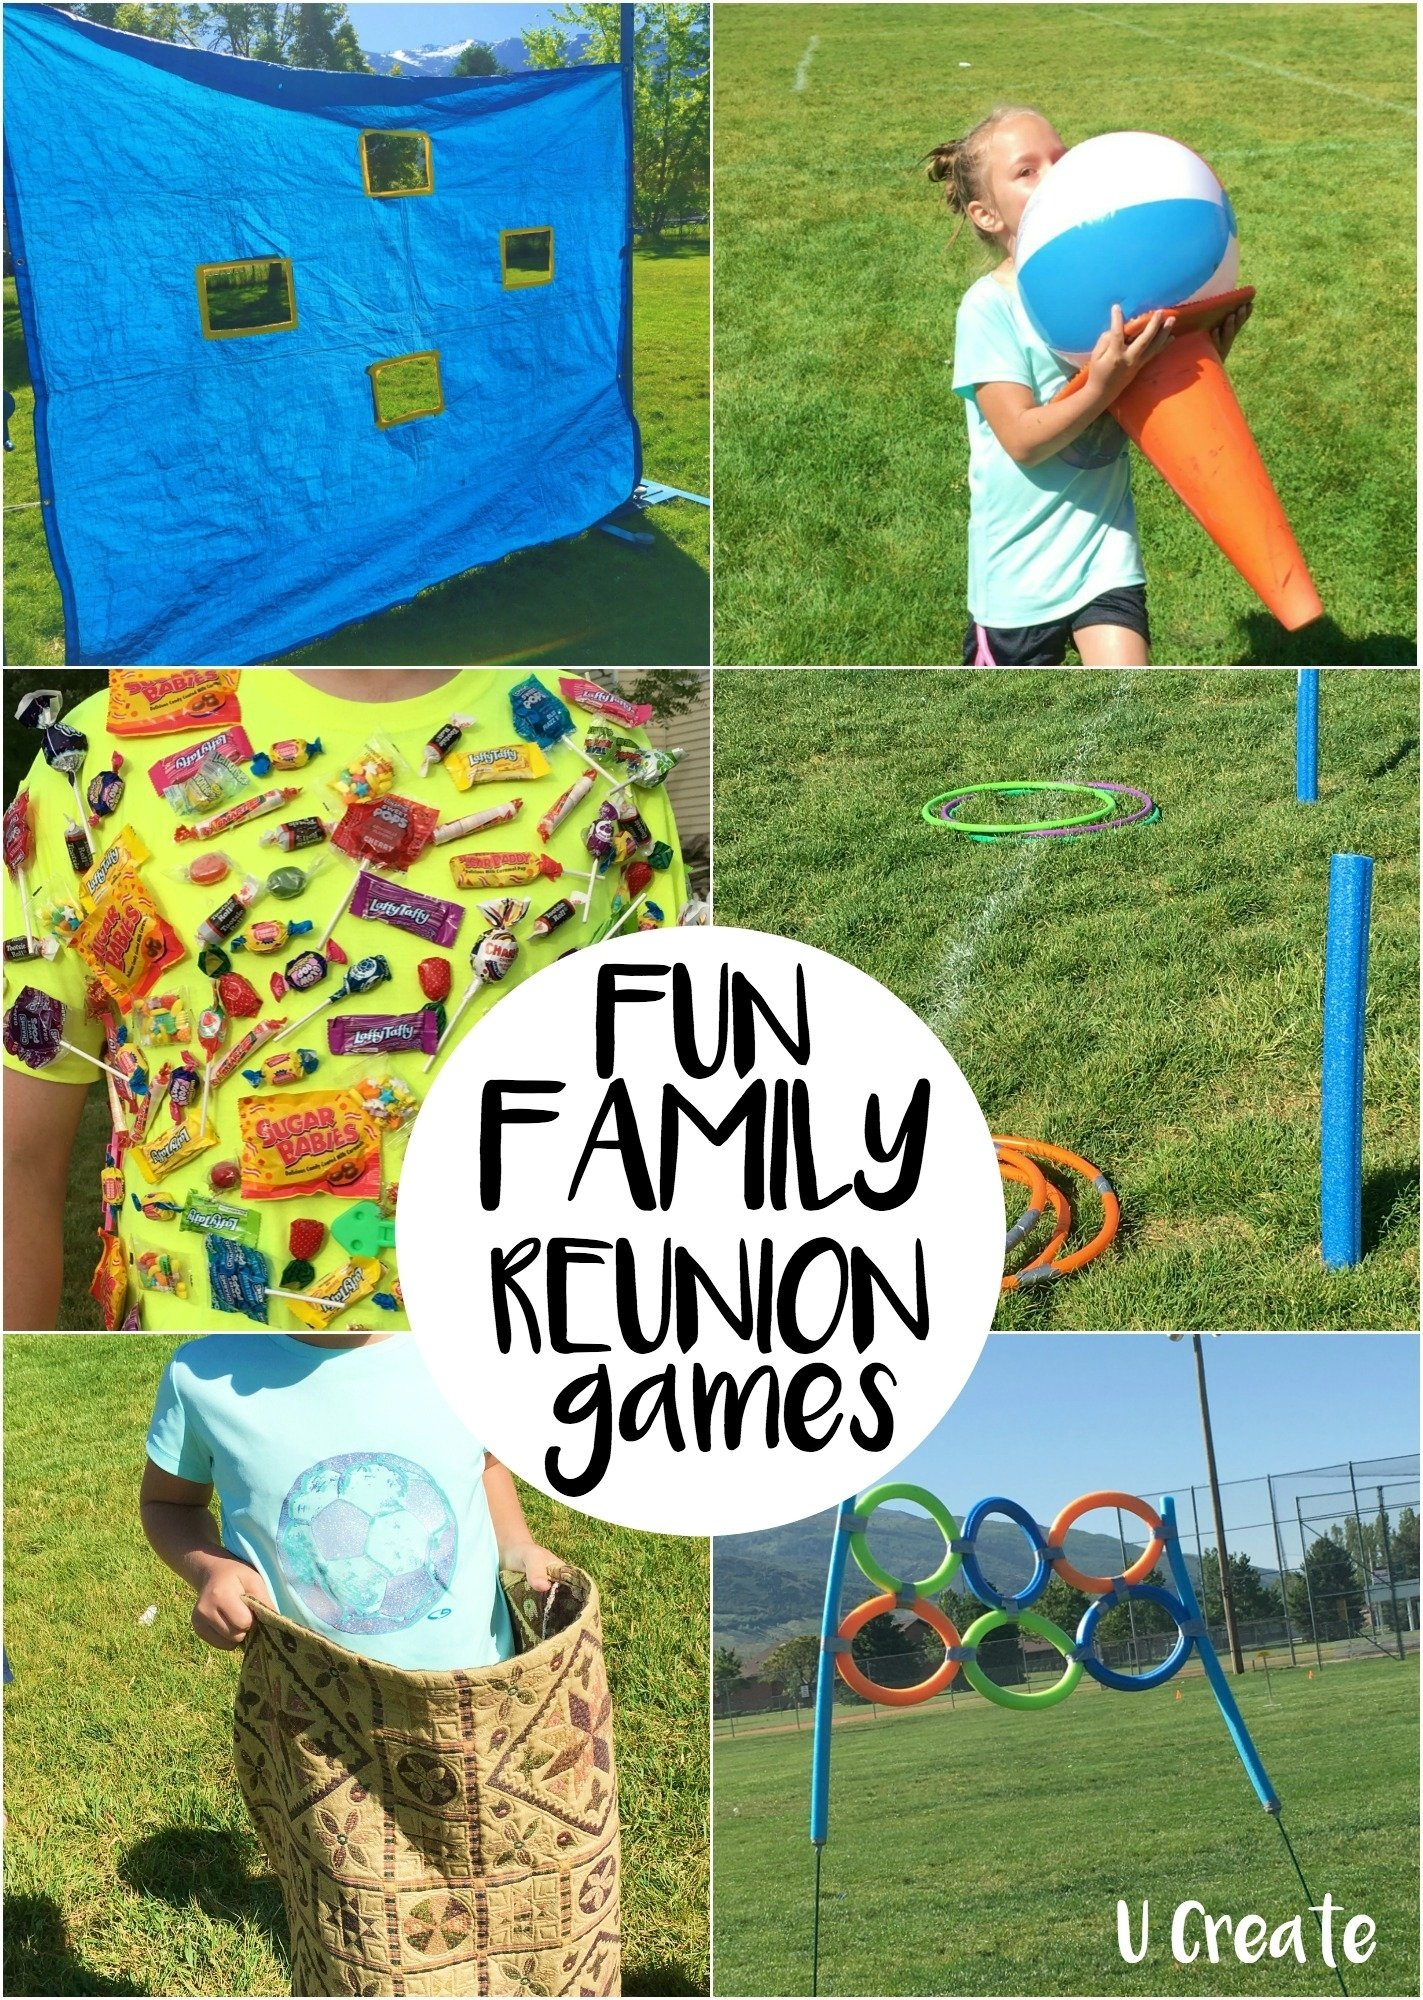 10 Trendy Family Reunion Games And Ideas family reunion games 2020